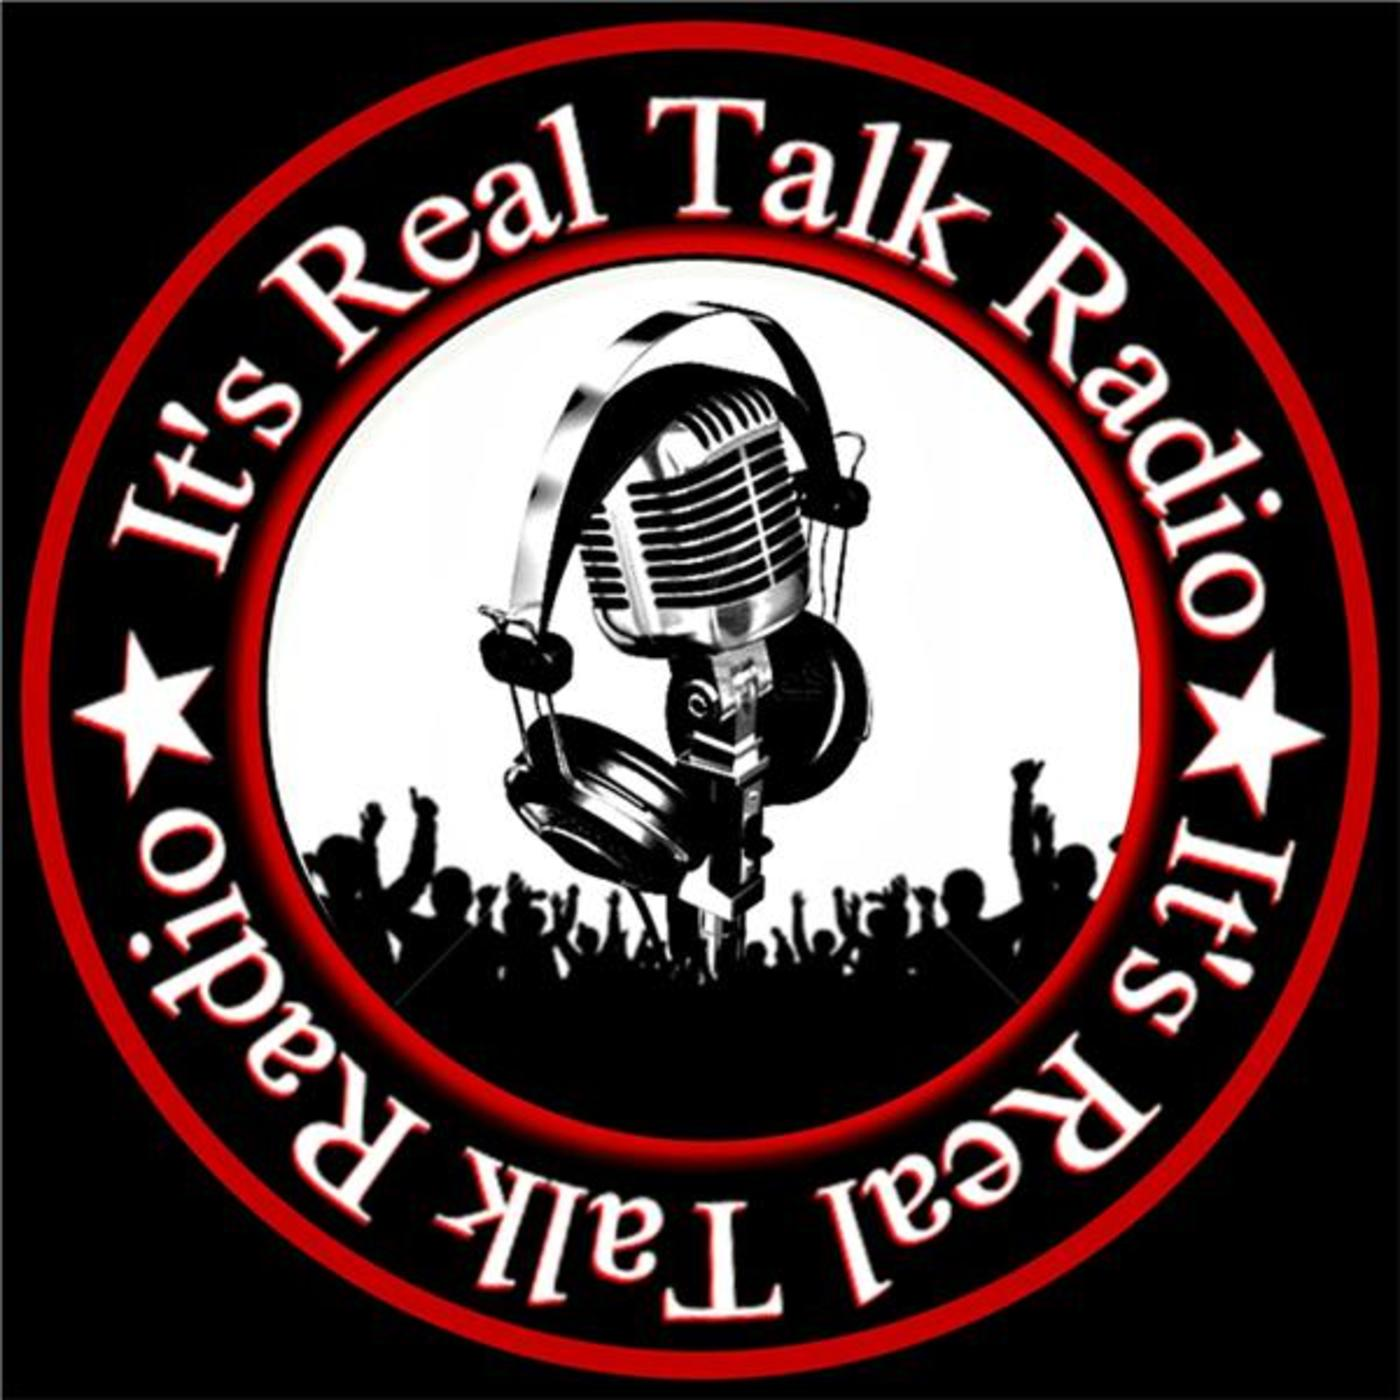 It's Real Talk Radio